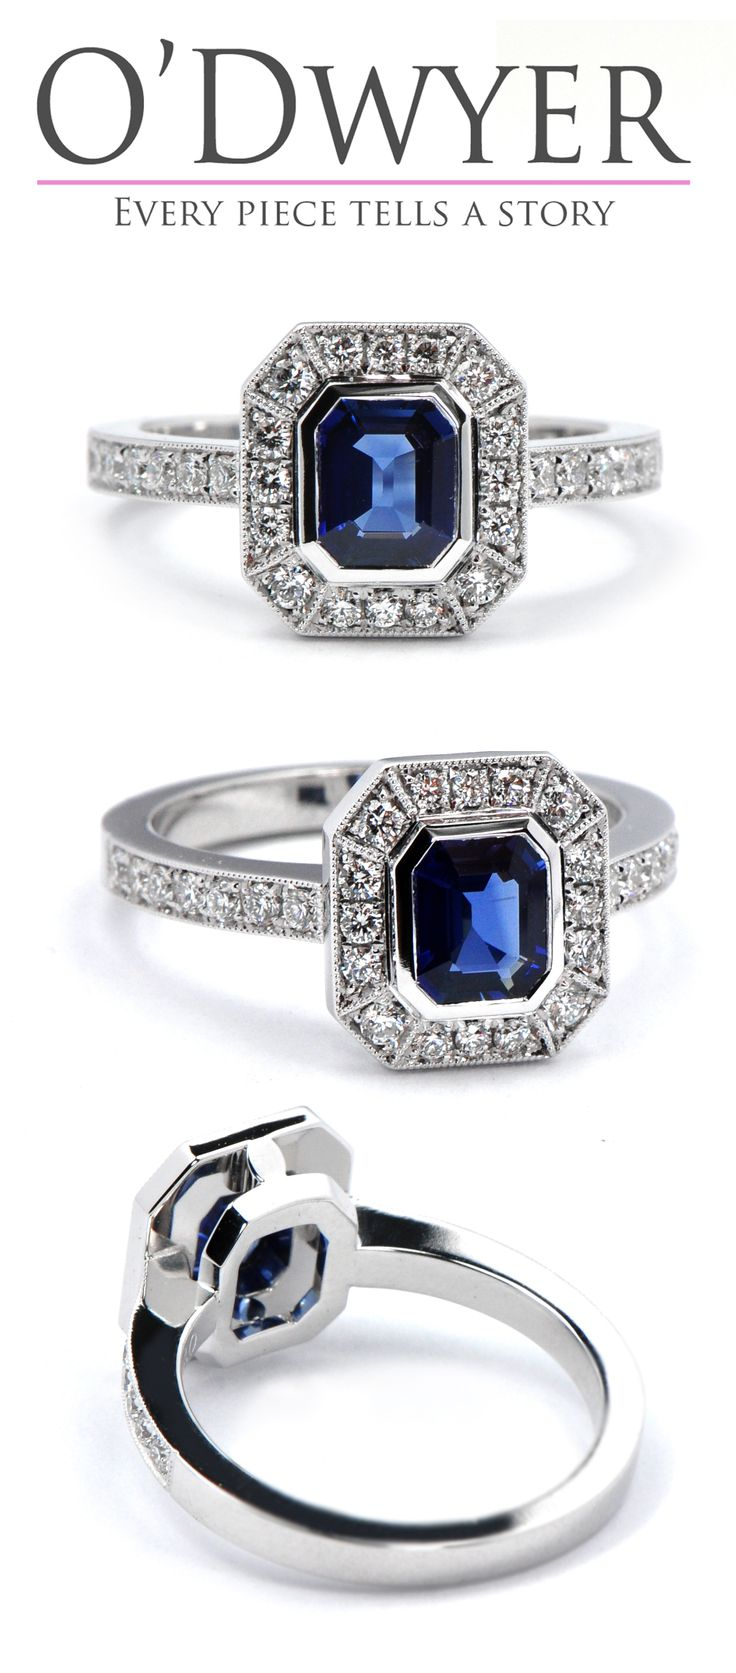 Antique Ring - 18ct white gold ring with an blue sapphire emerald cut centre surrounded with diamonds. Vigselring Förlovningsring.